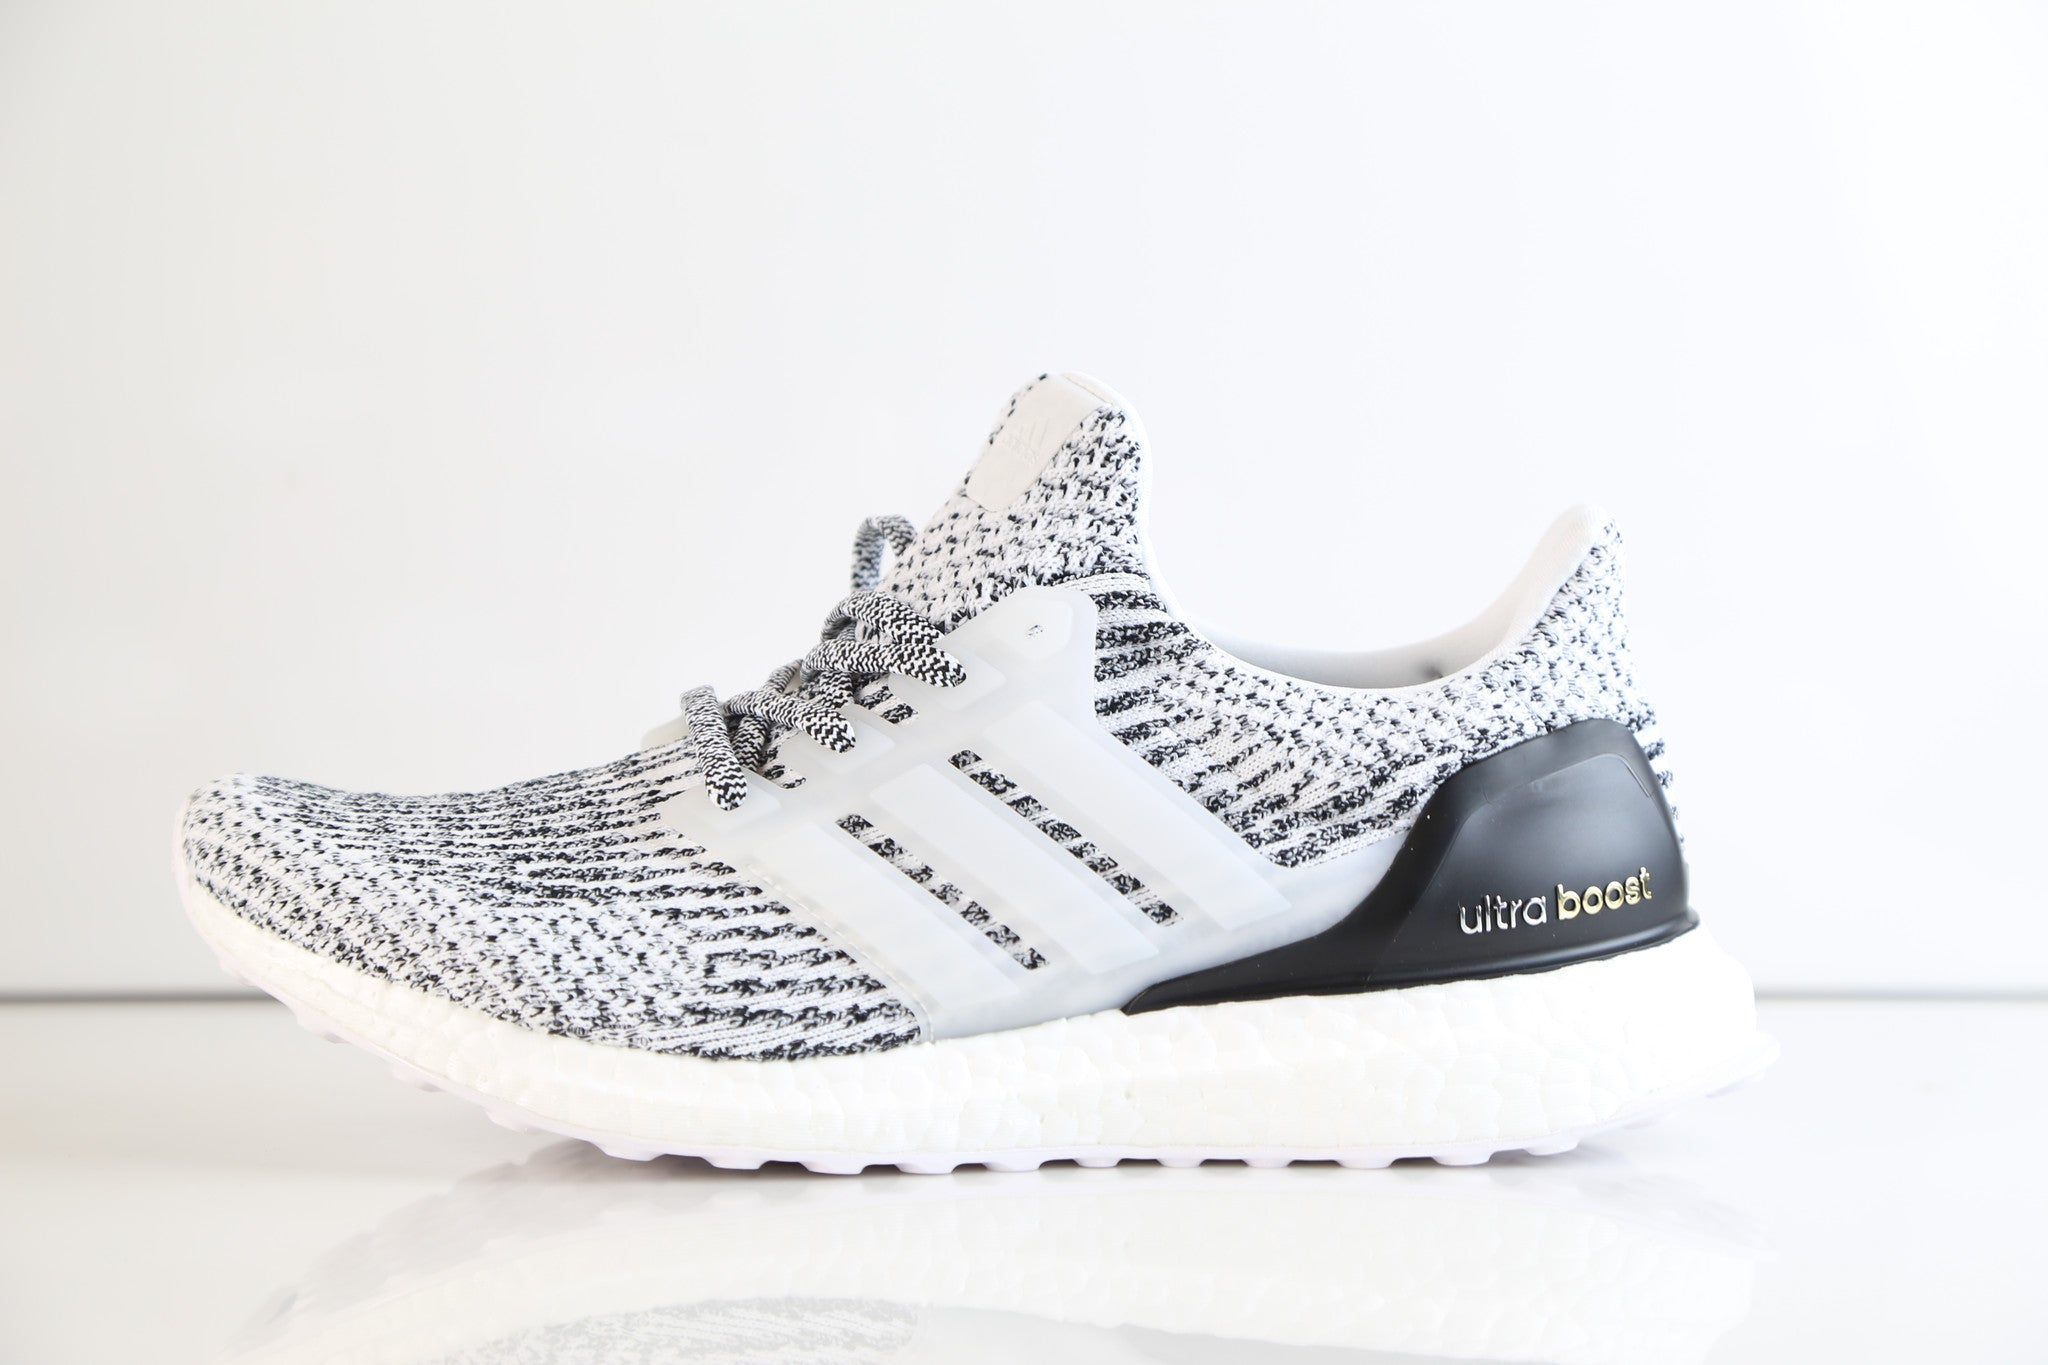 e1a36547e Adidas Ultra Boost 3.0 Oreo White Black S80636